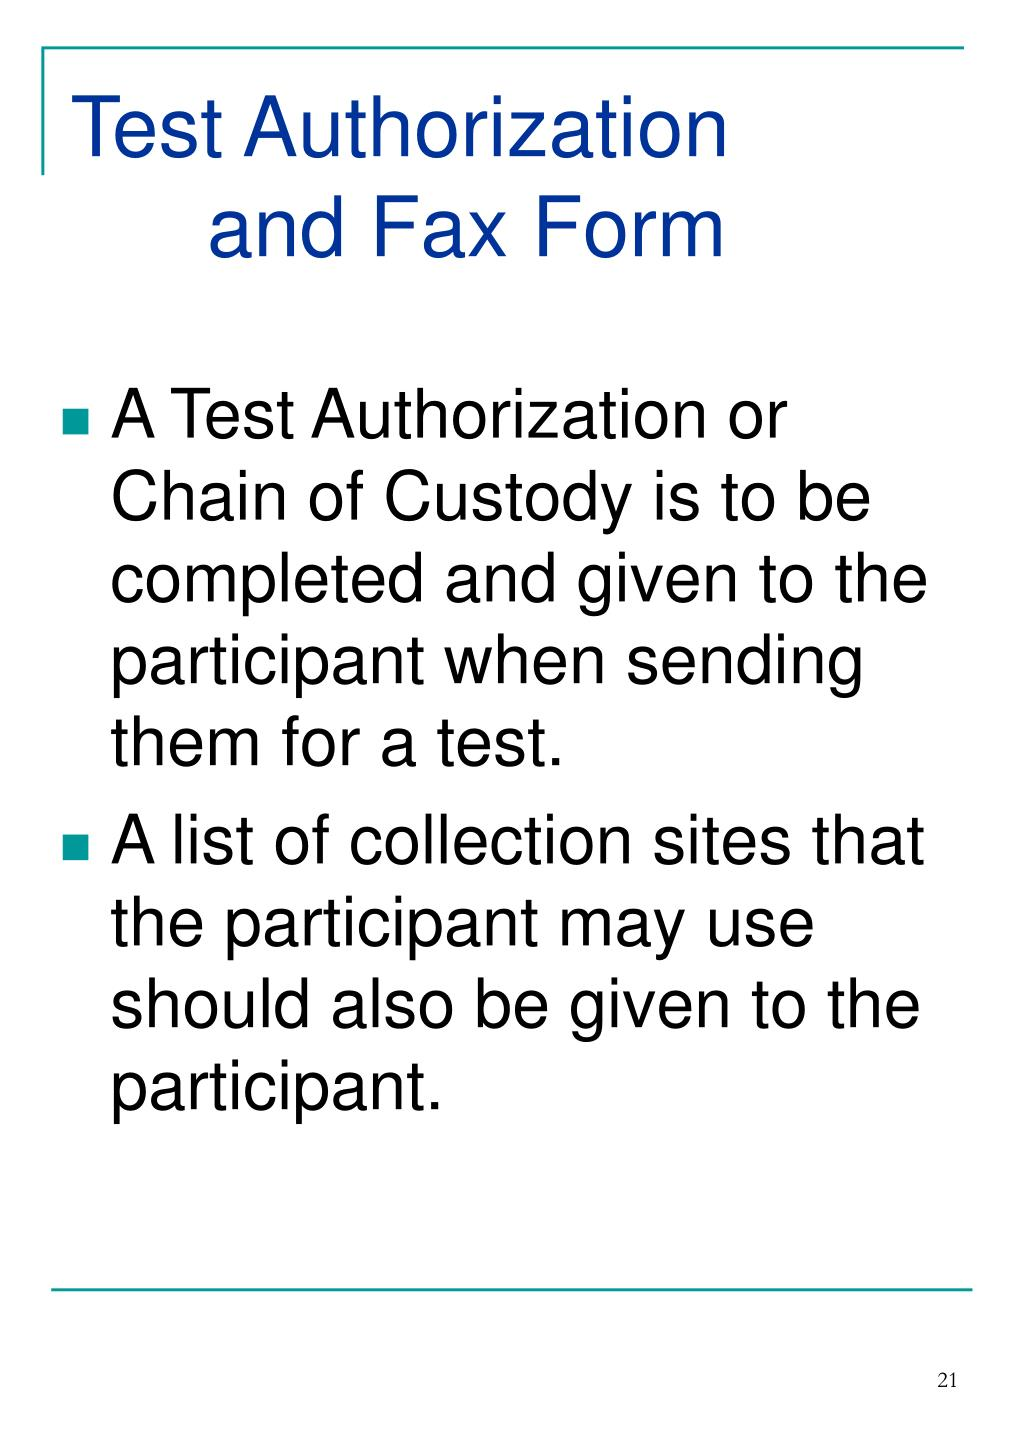 Test Authorization